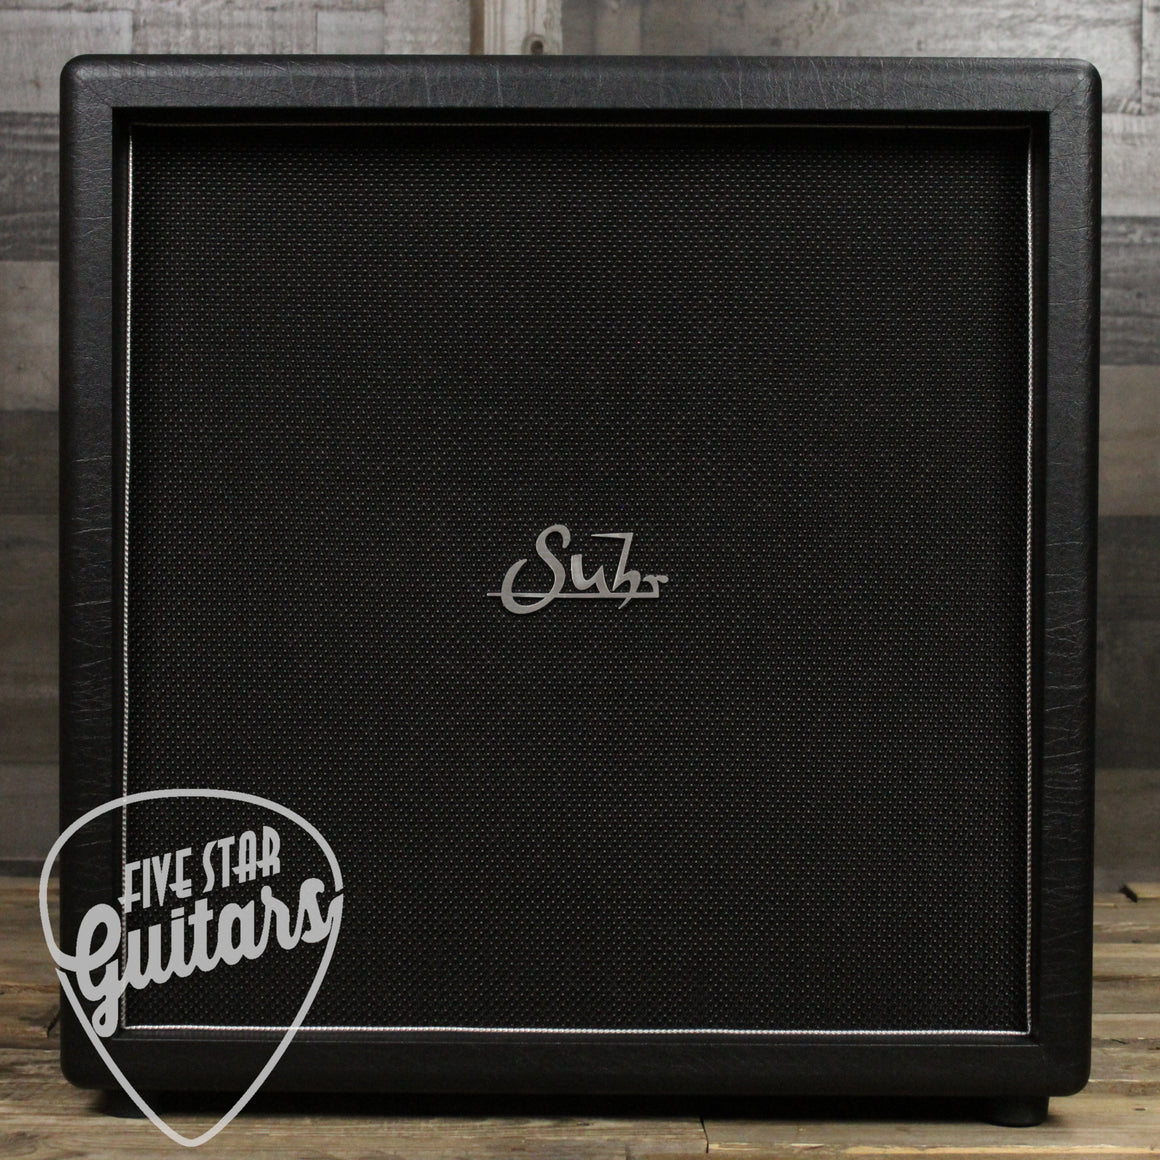 New and Cool Page 2 - Five Star Guitars